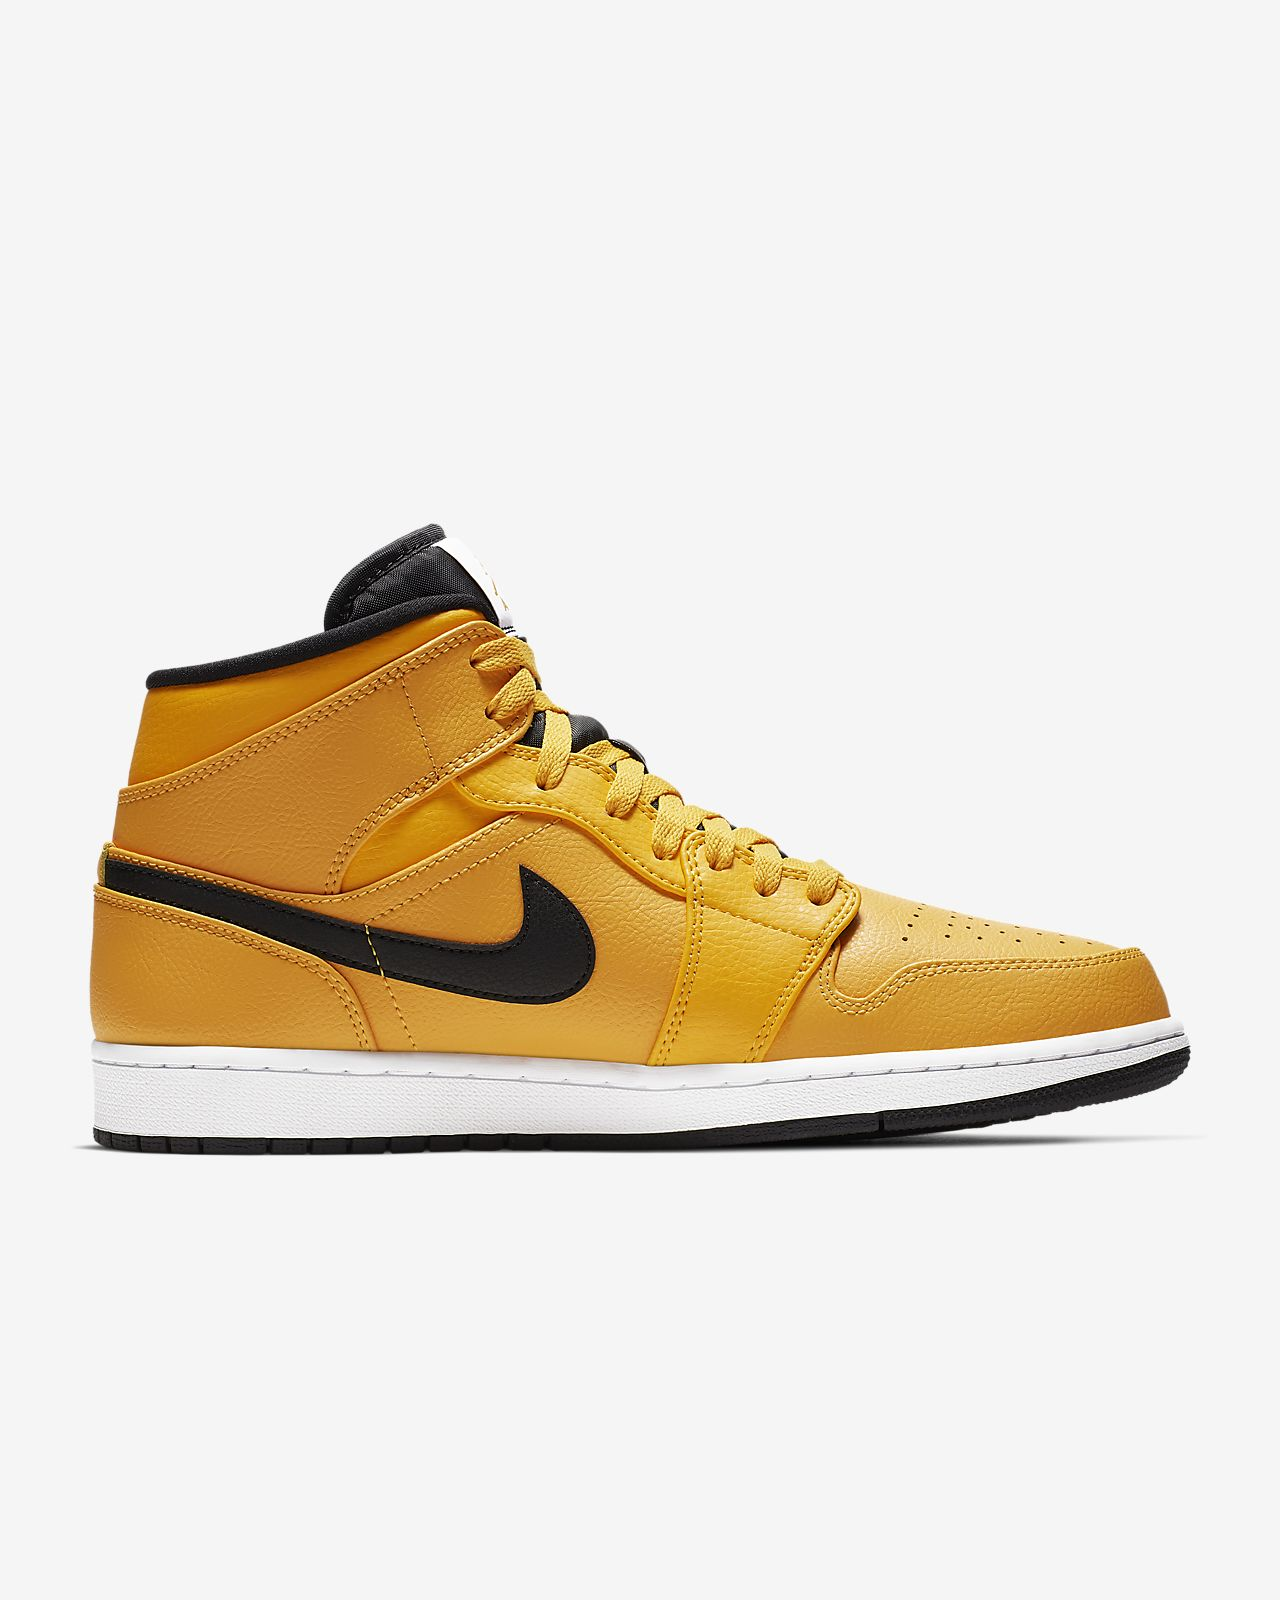 70a8e9e7f2a Air Jordan 1 Mid Men's Shoe. Nike.com